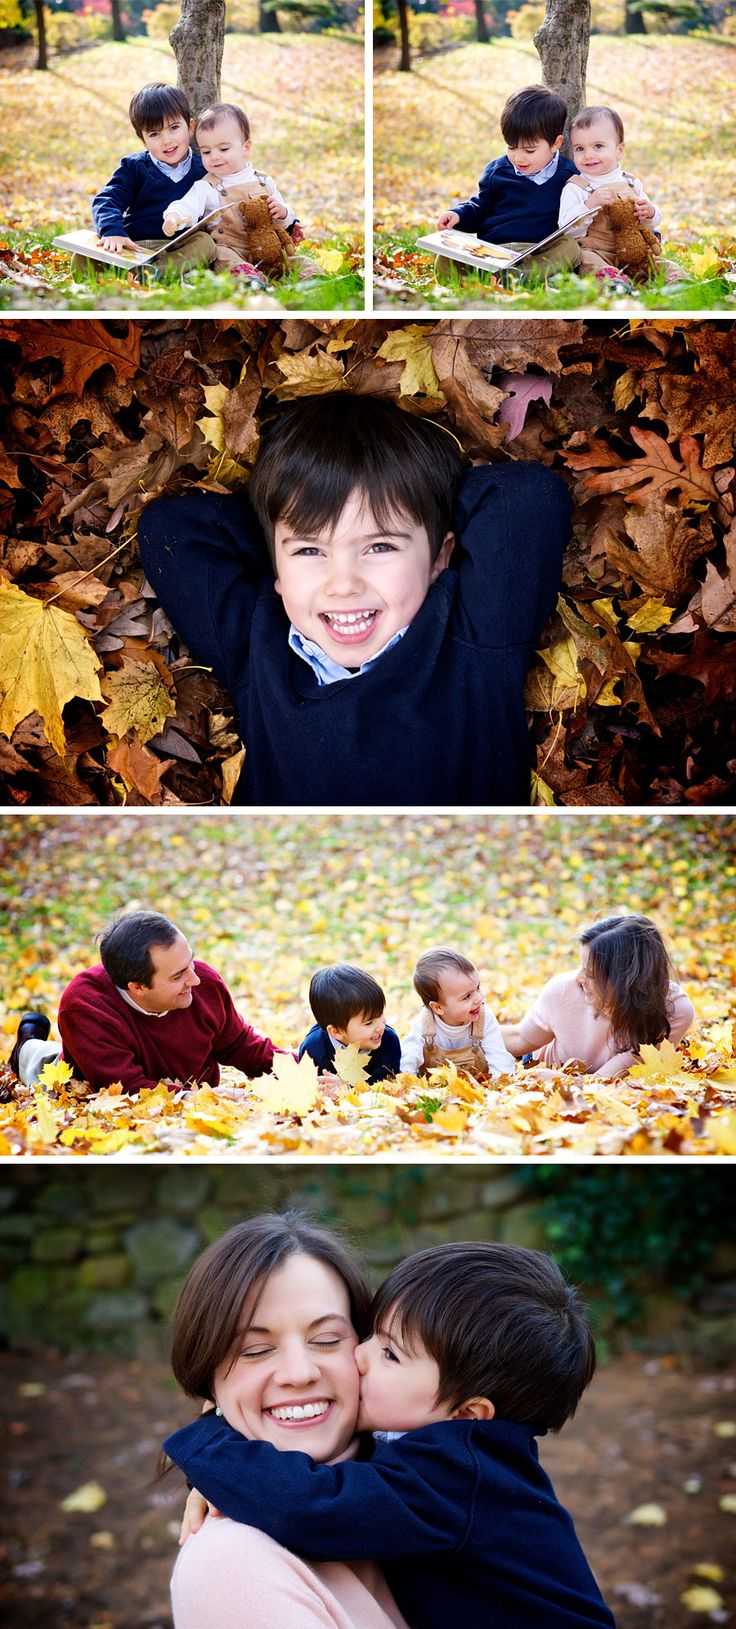 Fall Family Picture Ideas http://pinterest.com/pin/111323422012257619/